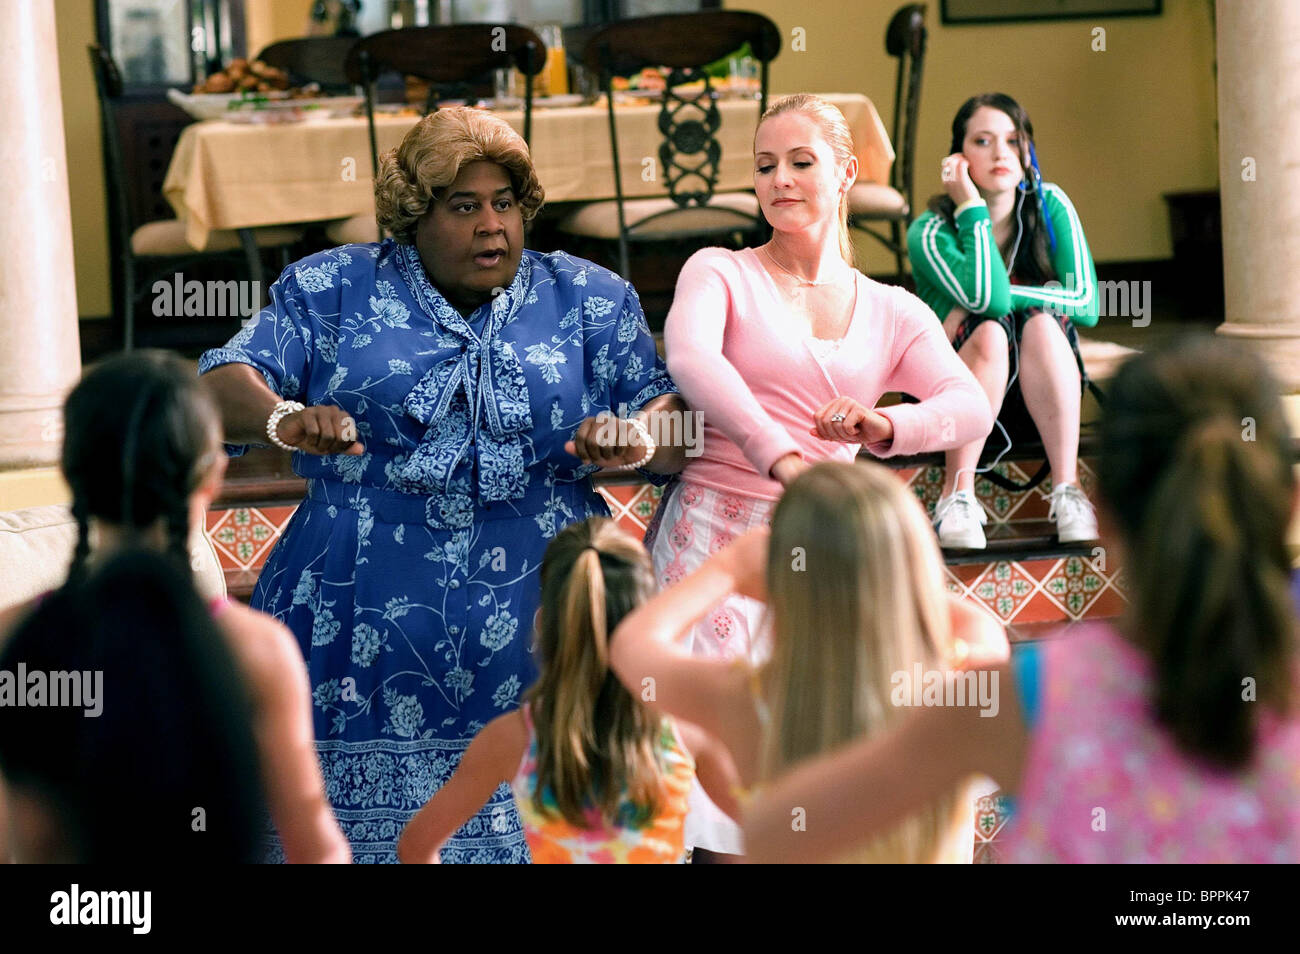 Big mommas house 2 out nannies us weekend box office